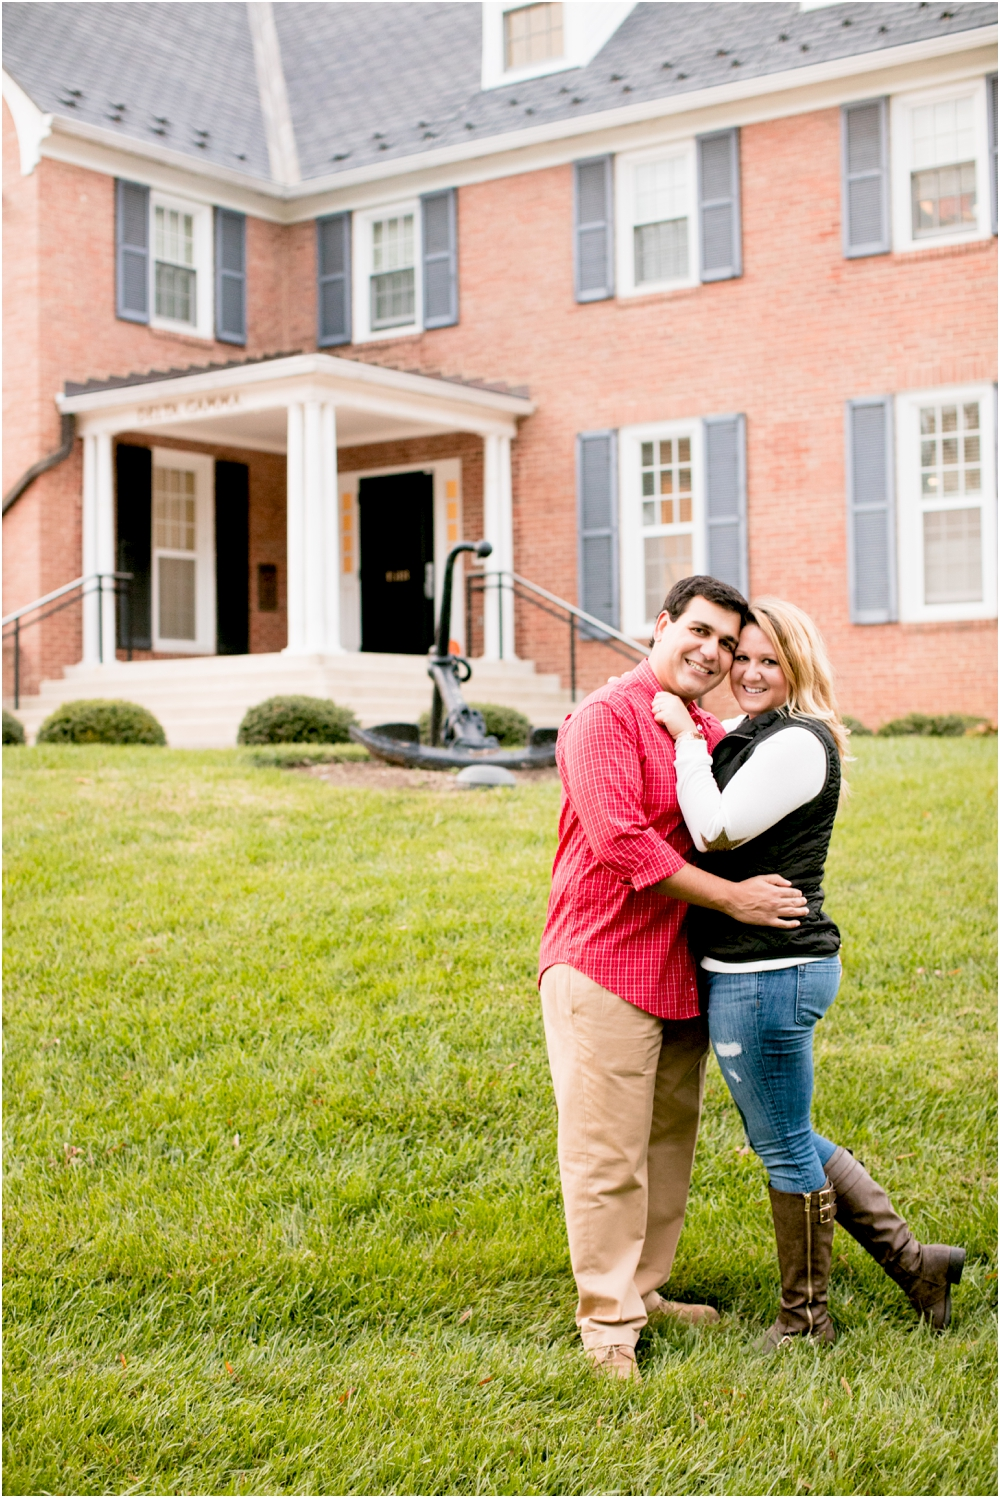 torie chris university of maryland engagement session living radiant photography_0034.jpg